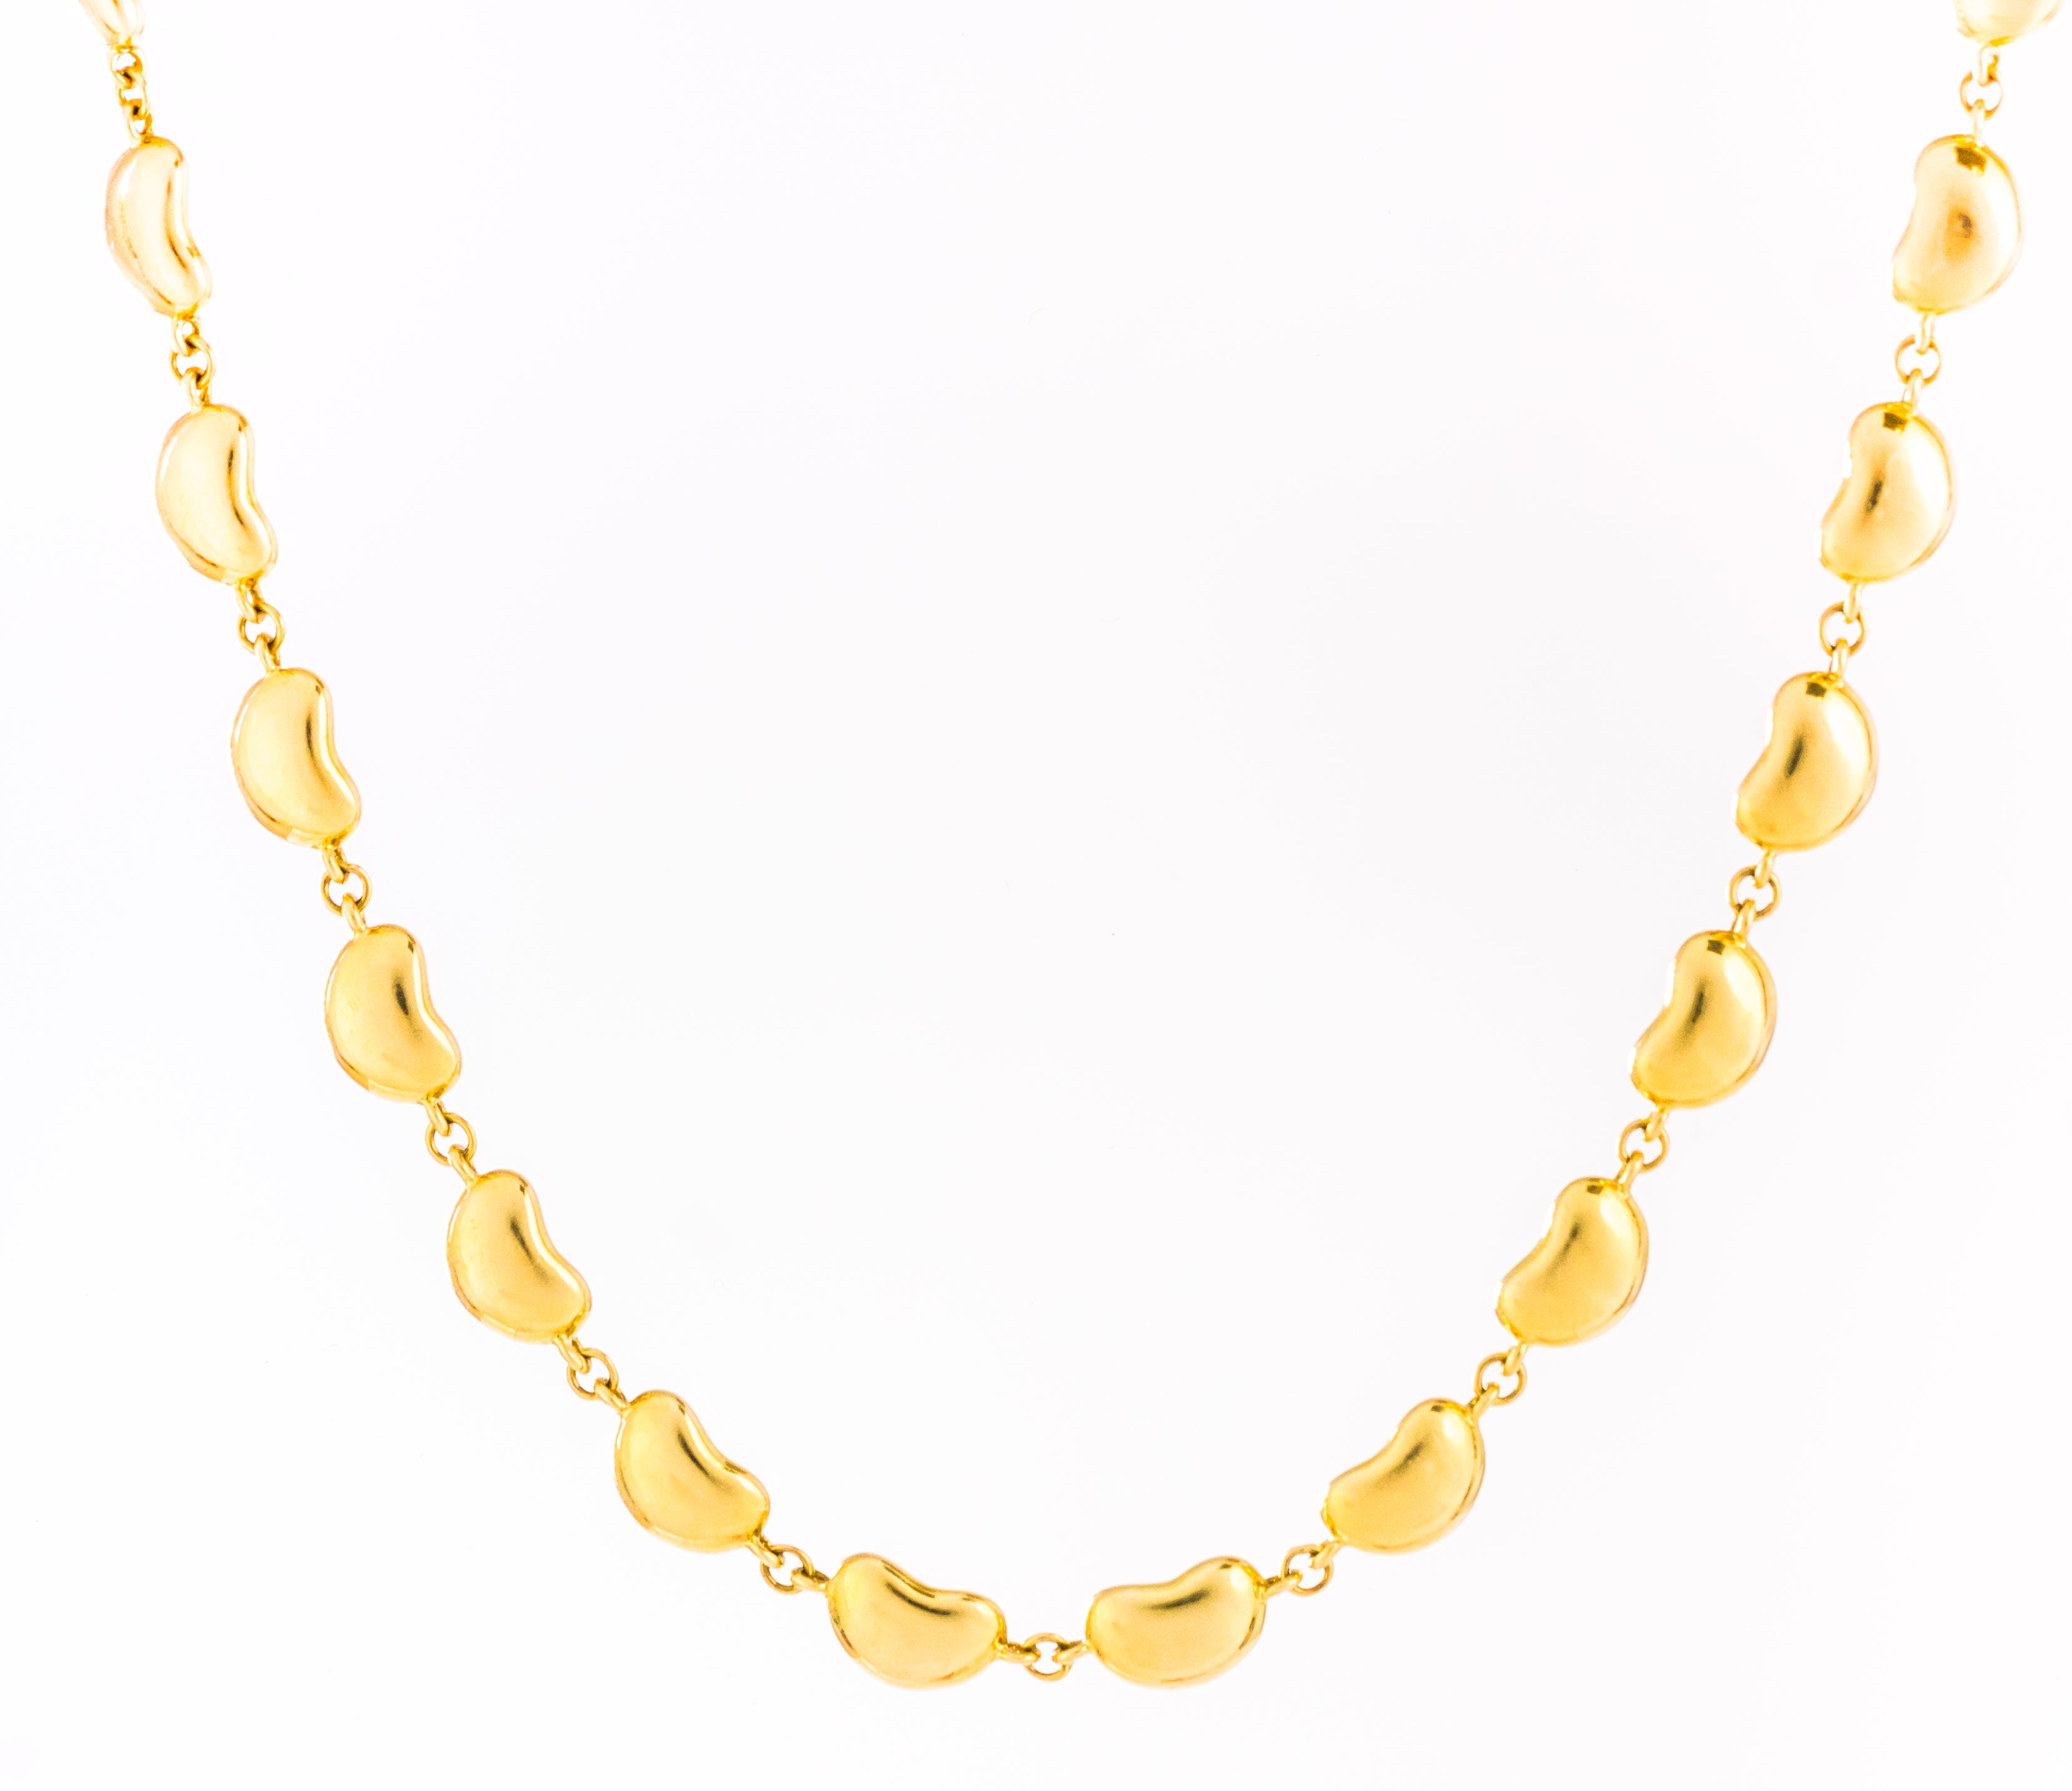 866ba9718d3 Tiffany and Co. Elsa Peretti Bean Collection 18K Gold Link Necklace at  1stdibs